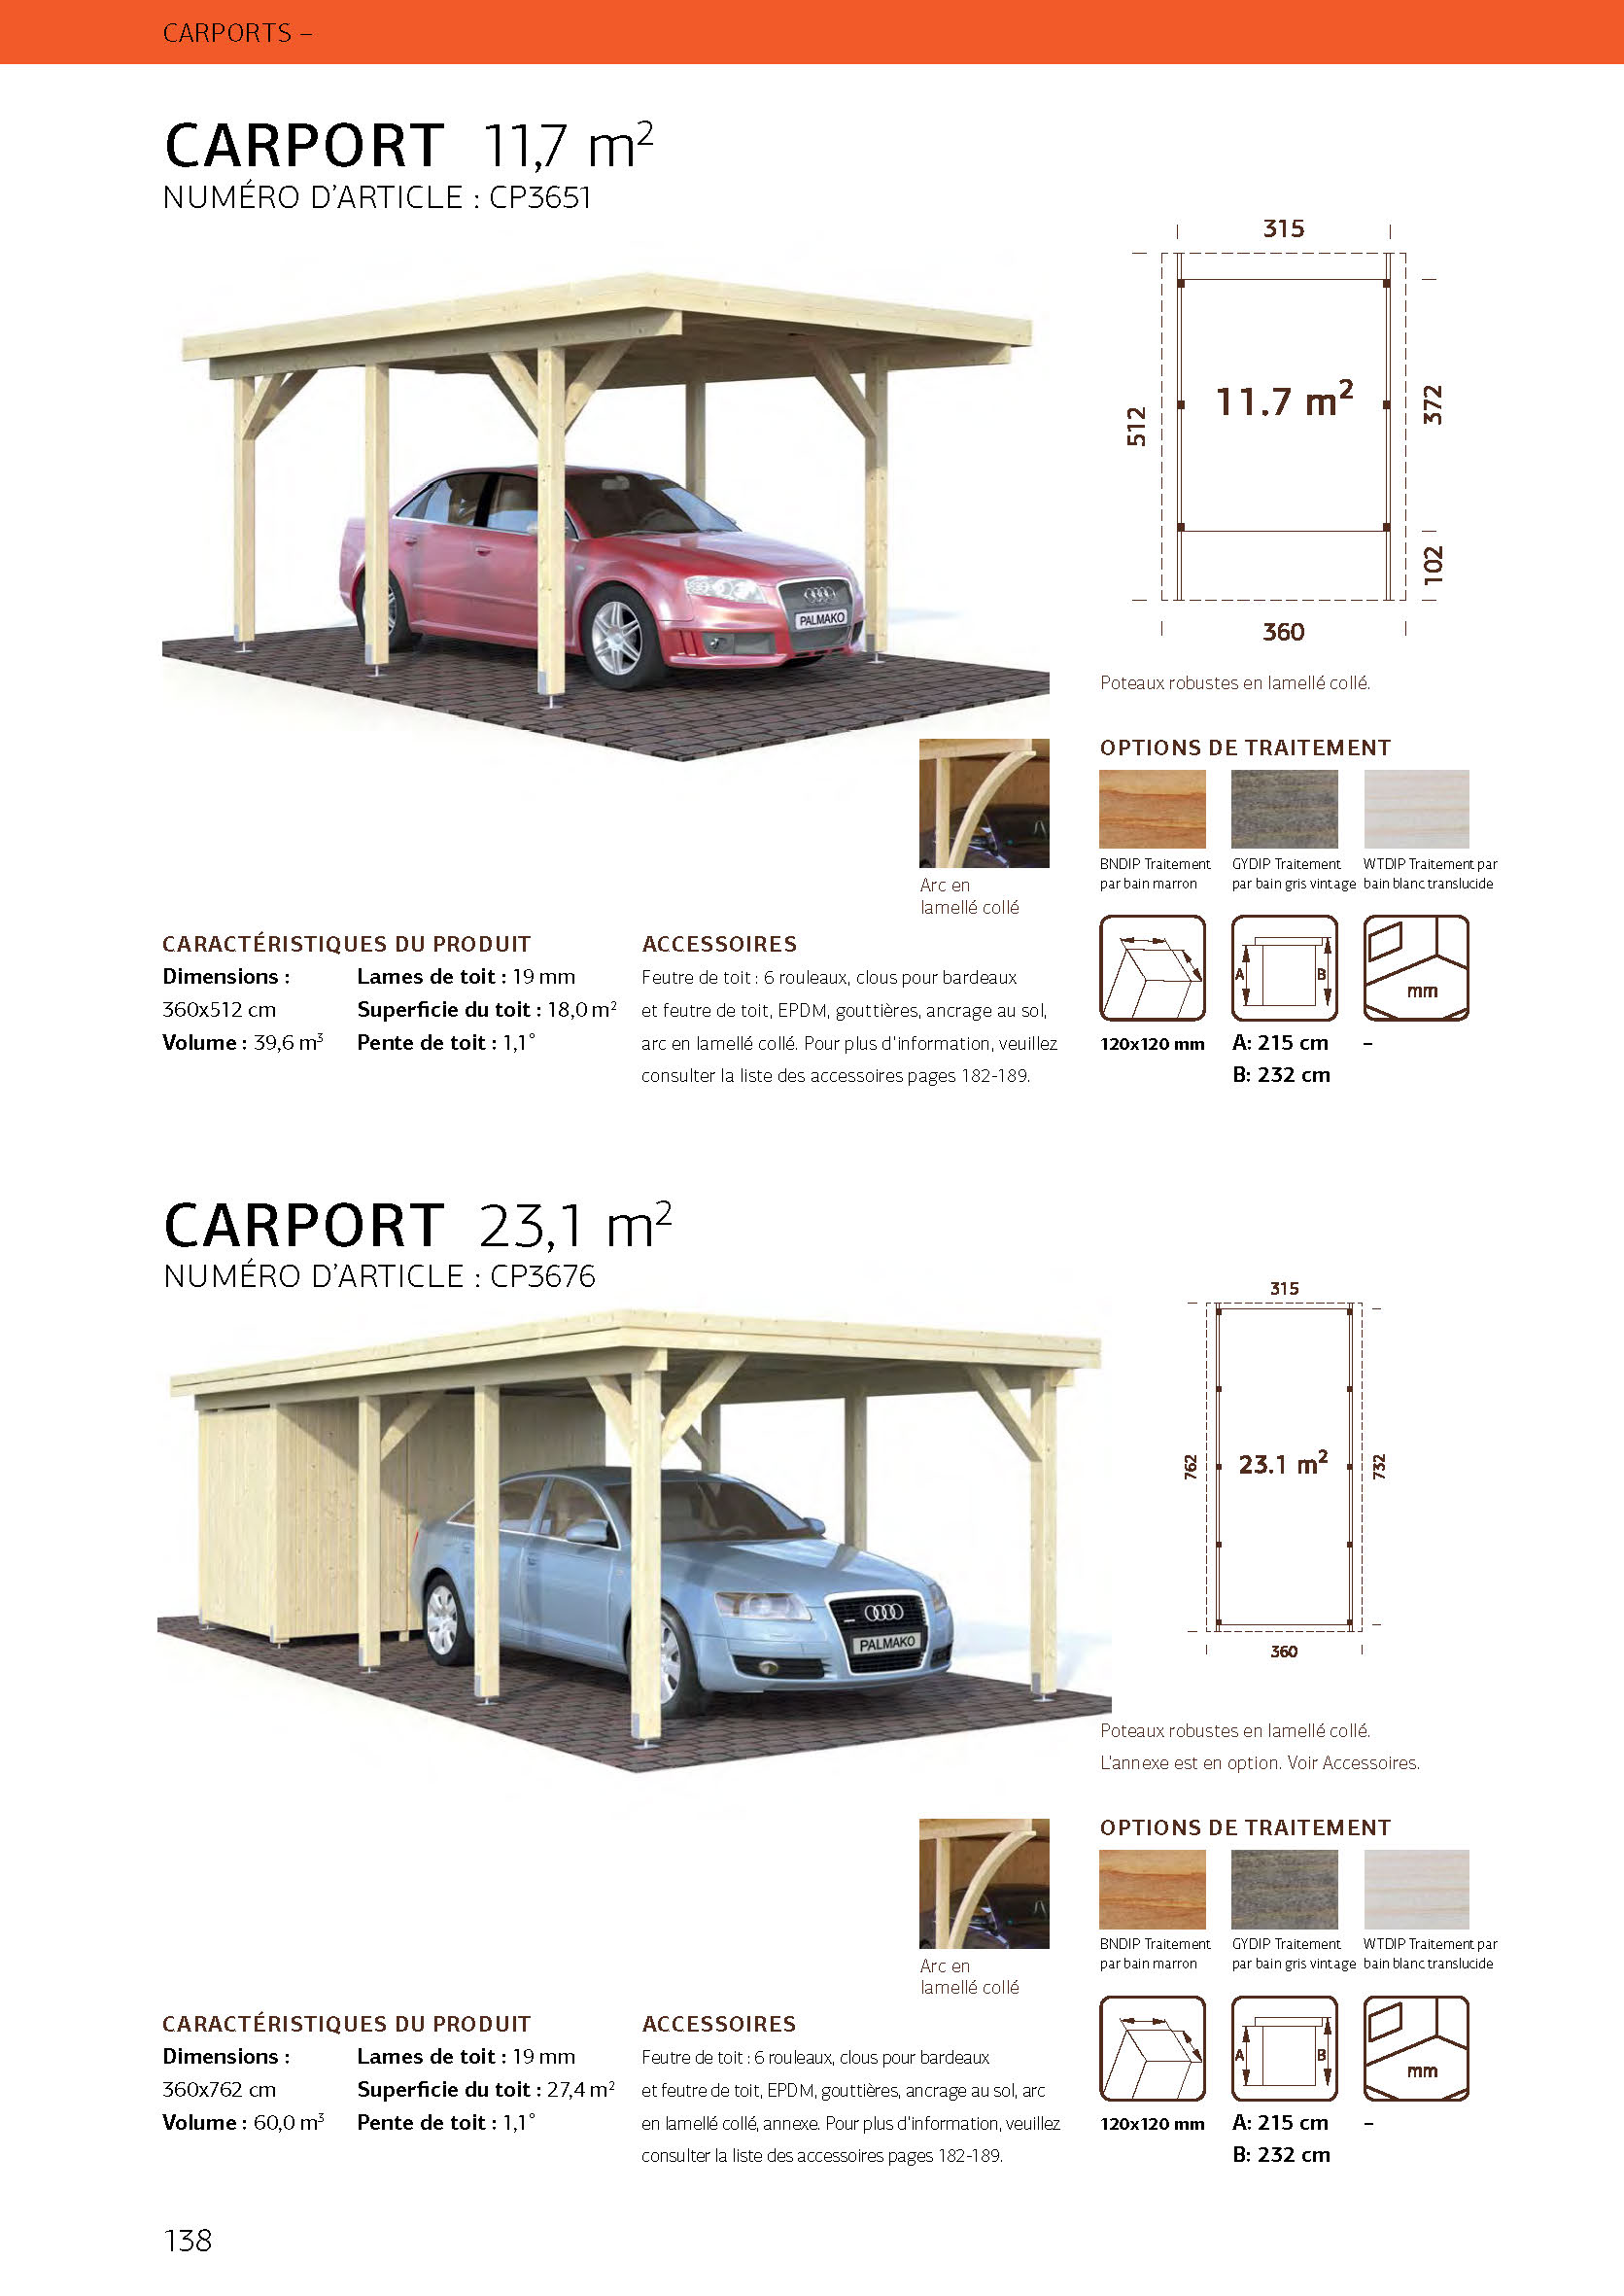 carport catalogue_2017_web_fr_Page_12